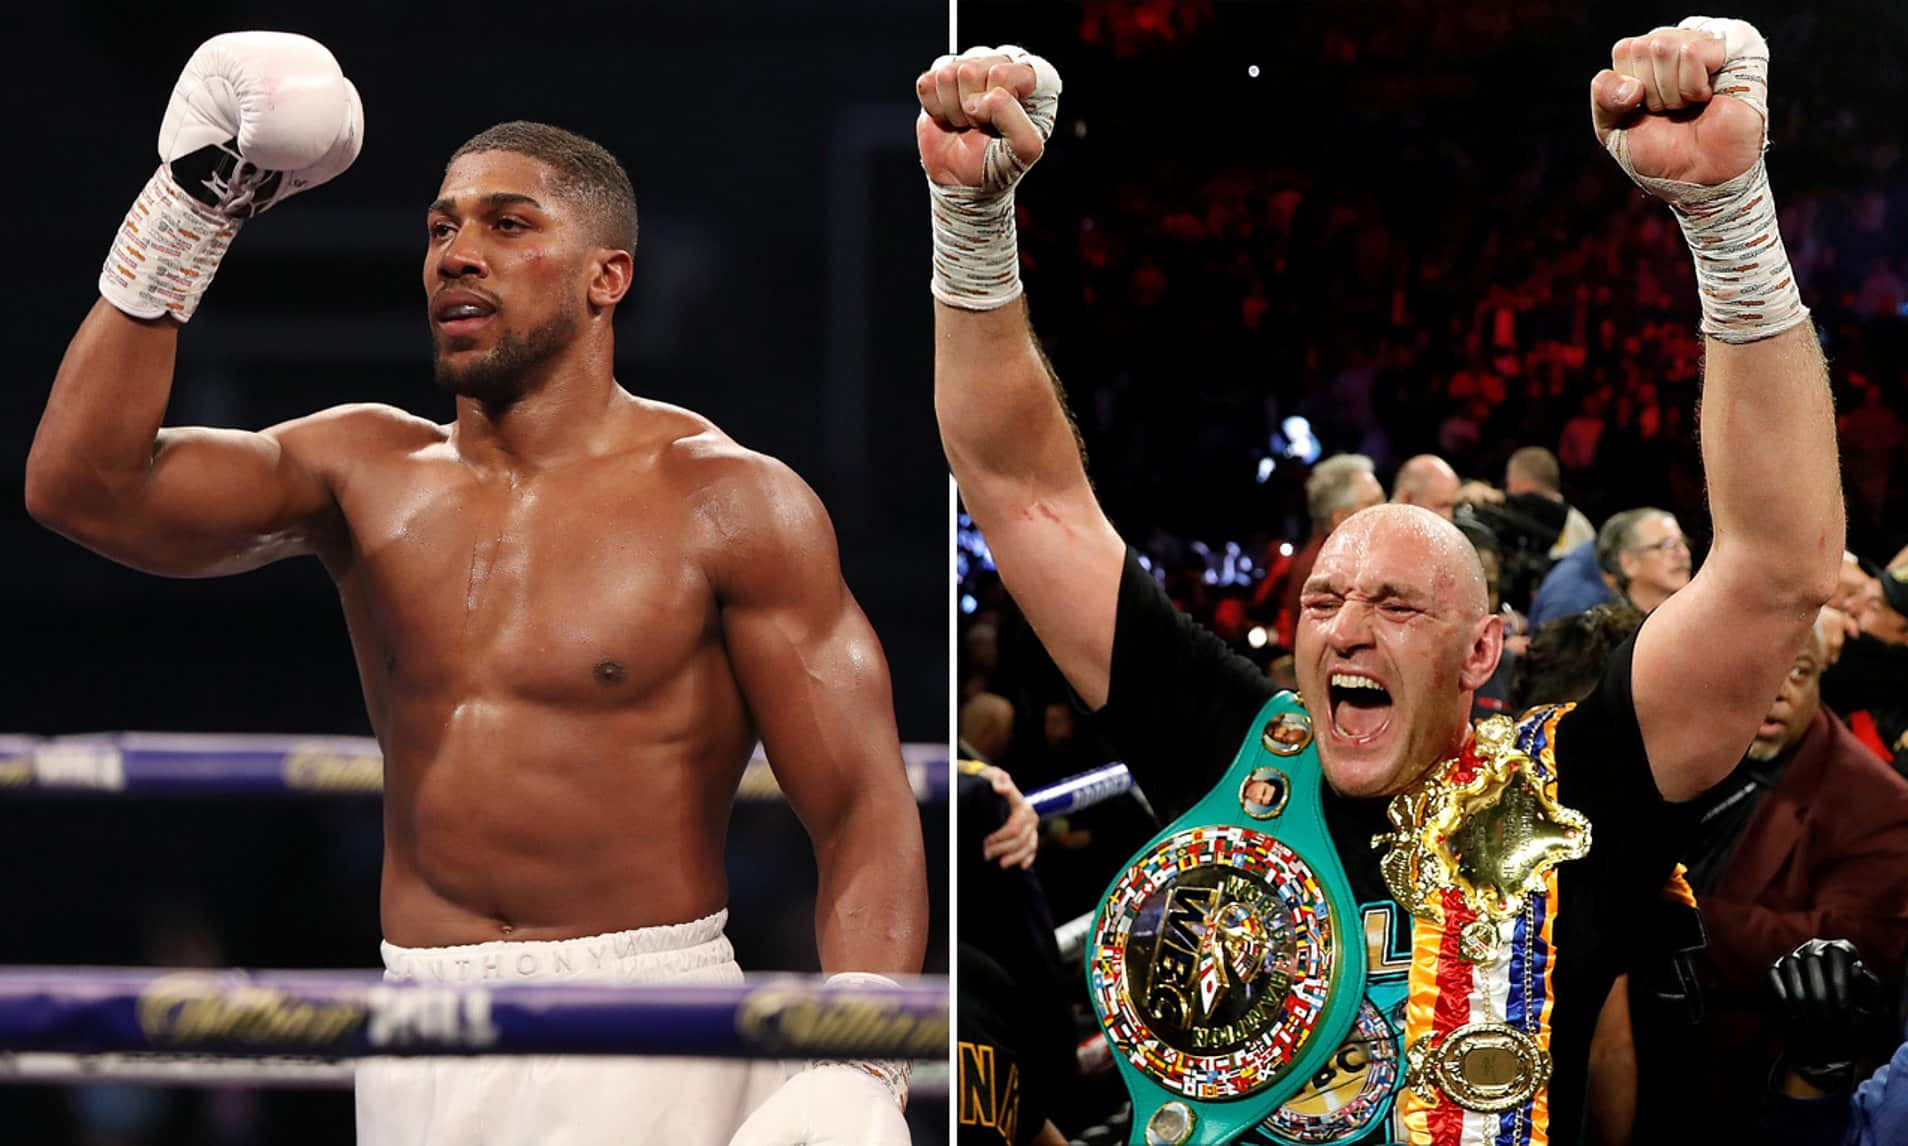 Fury: I'll Quit If Joshua Makes It Past Three Rounds With Me